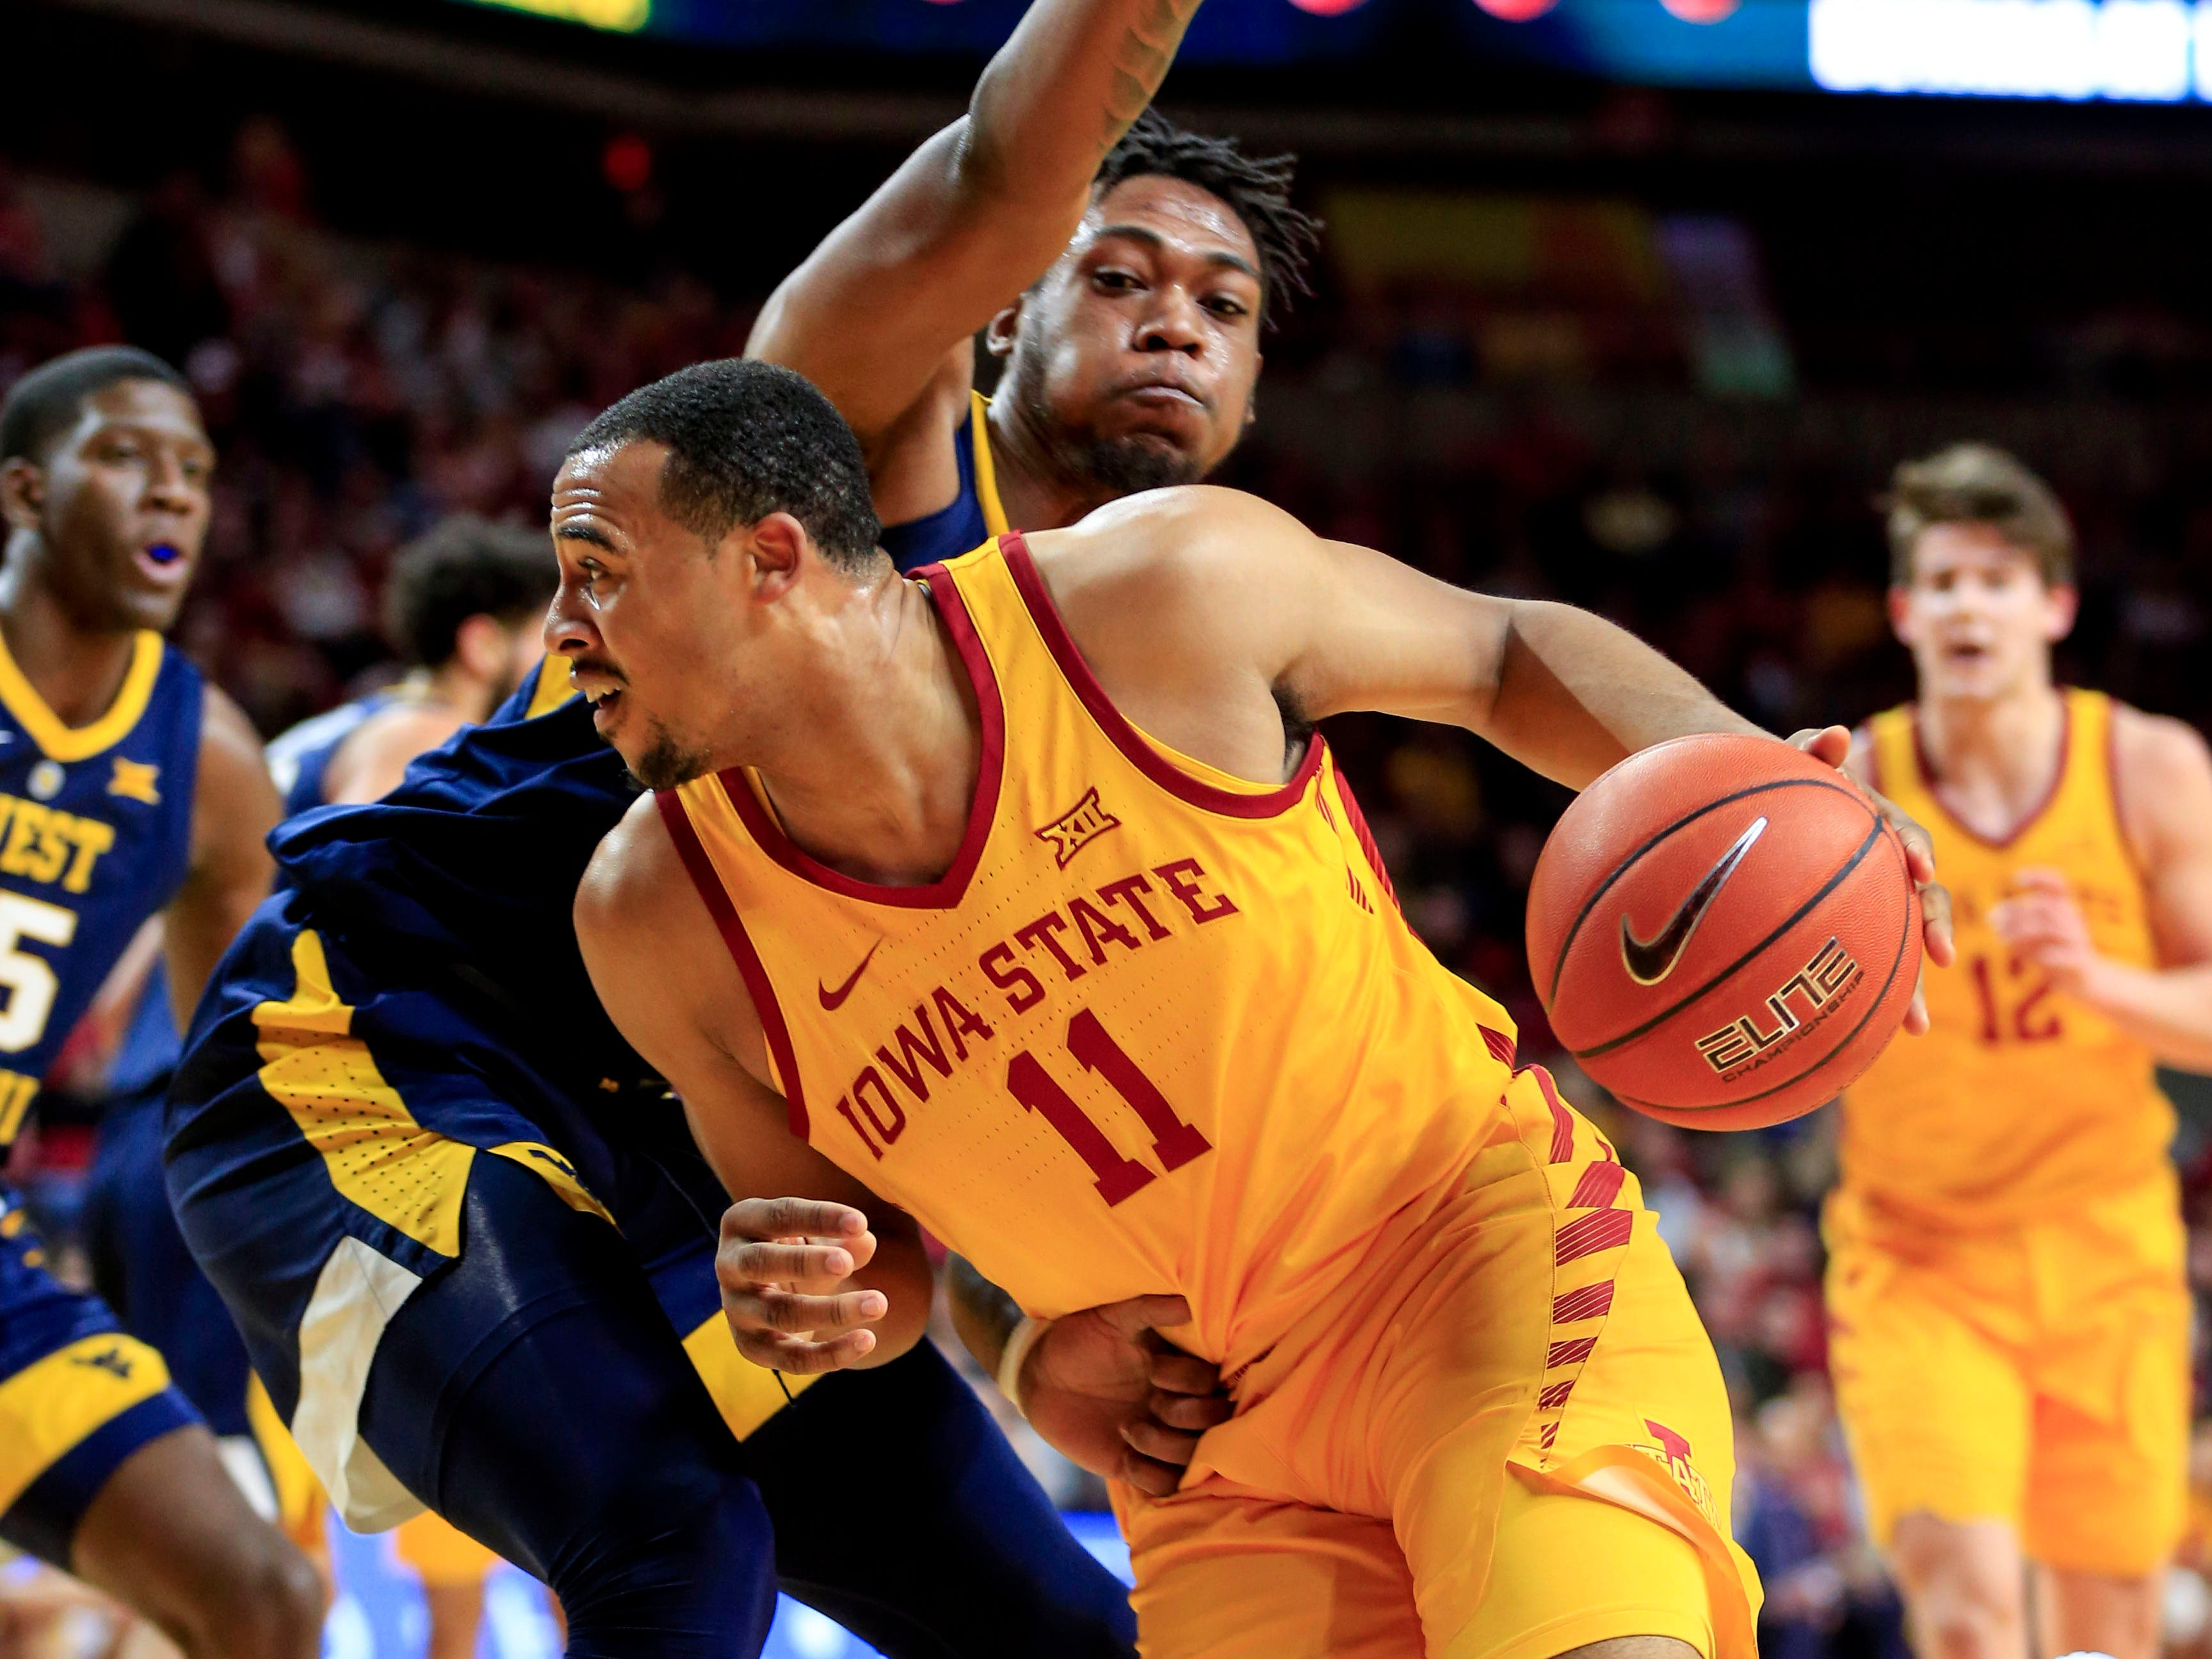 Iowa State's Talen Horton-Tucker drives to the basket during a game against West Virginia at Hilton Coliseum Wednesday, Jan. 30, 2019.